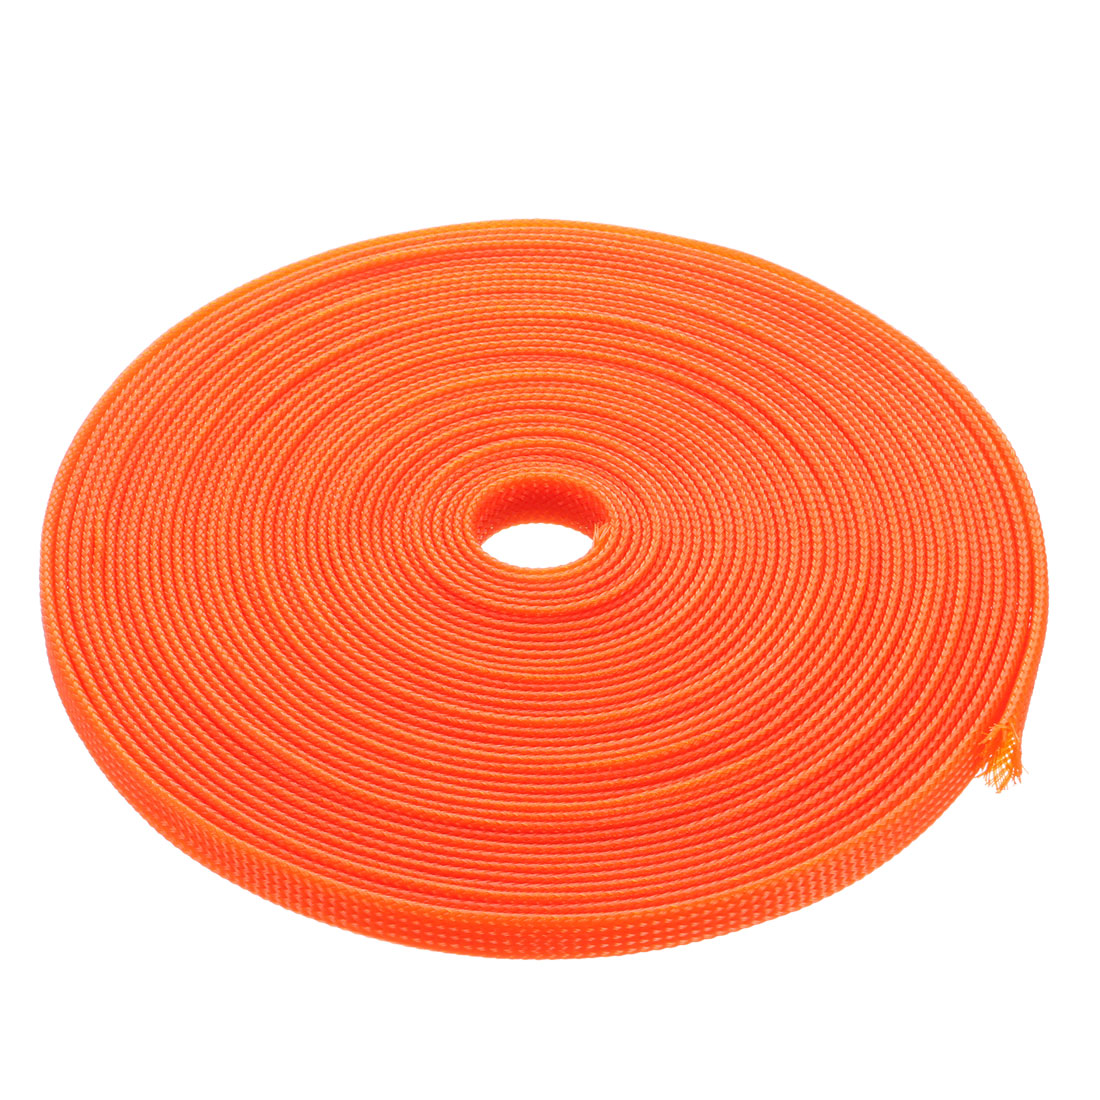 PET Braided Sleeving 32.8 Feet 10m Expandable Cable Wrap 8mm Diameter Wire Sheath Orange